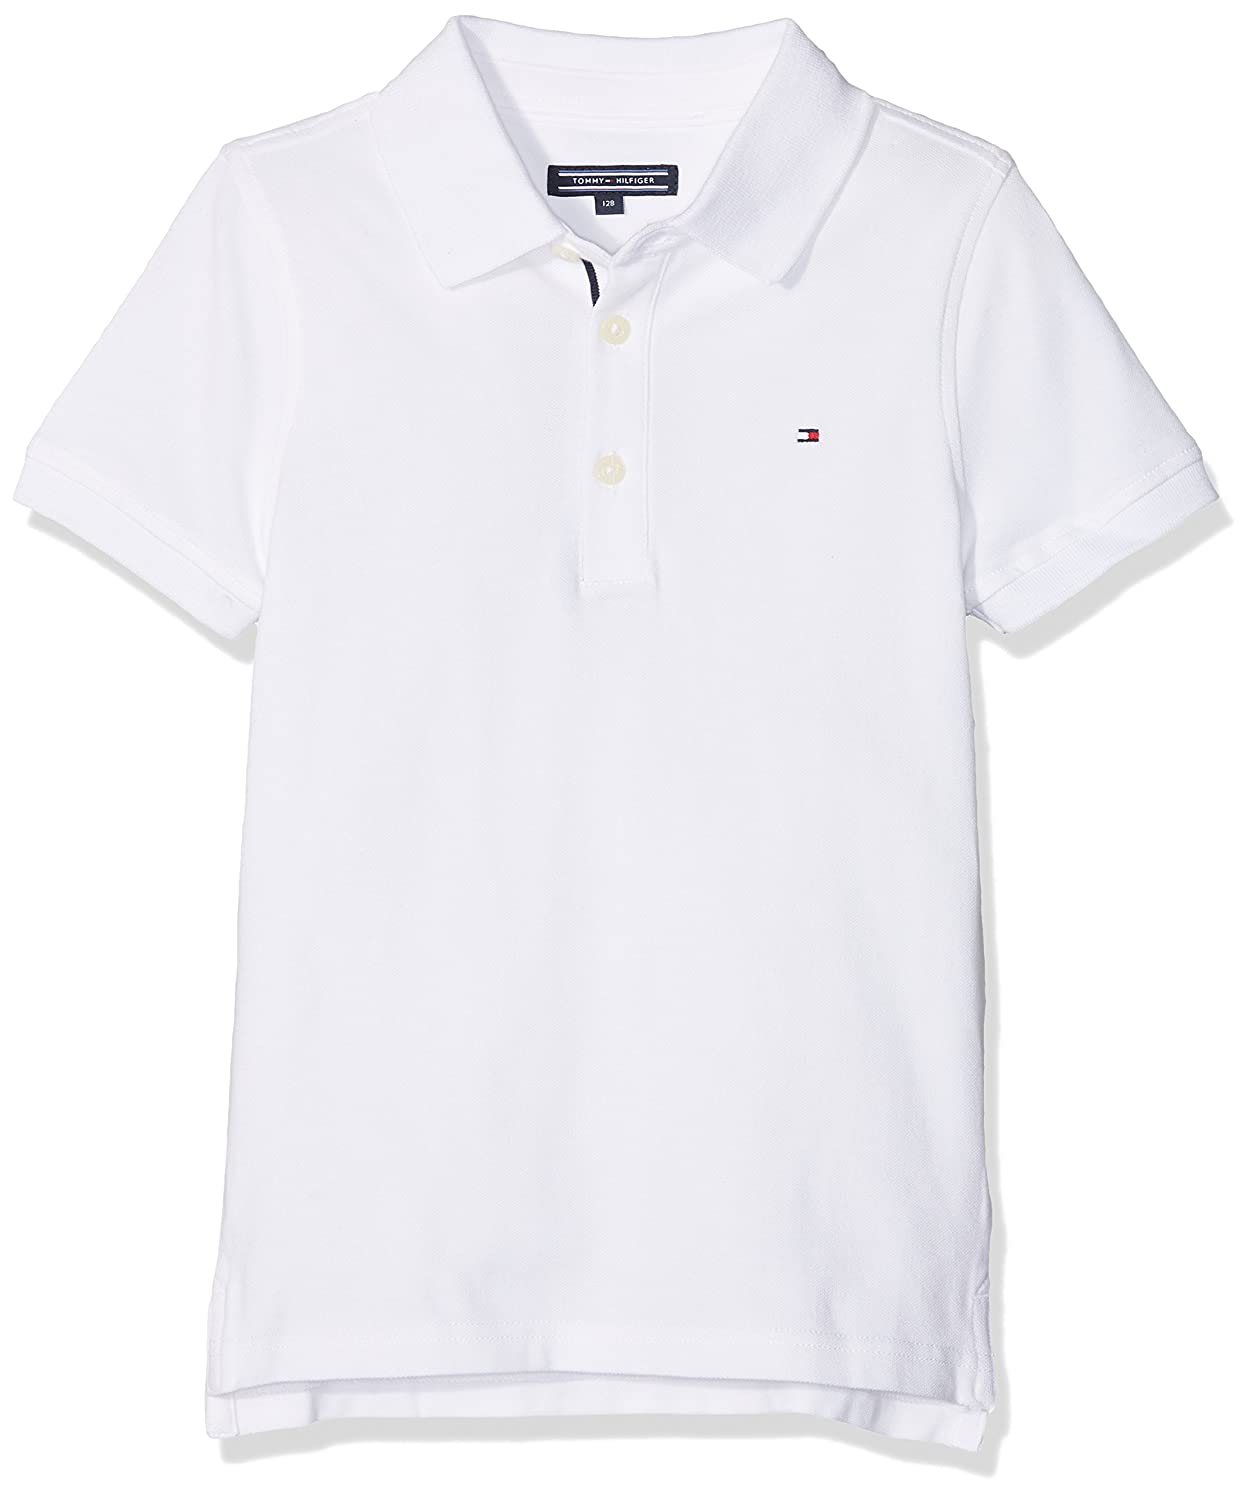 Tommy Hilfiger Boy's AME Hilfiger Slim Fit S/S Polo Shirt: Amazon.co.uk:  Clothing